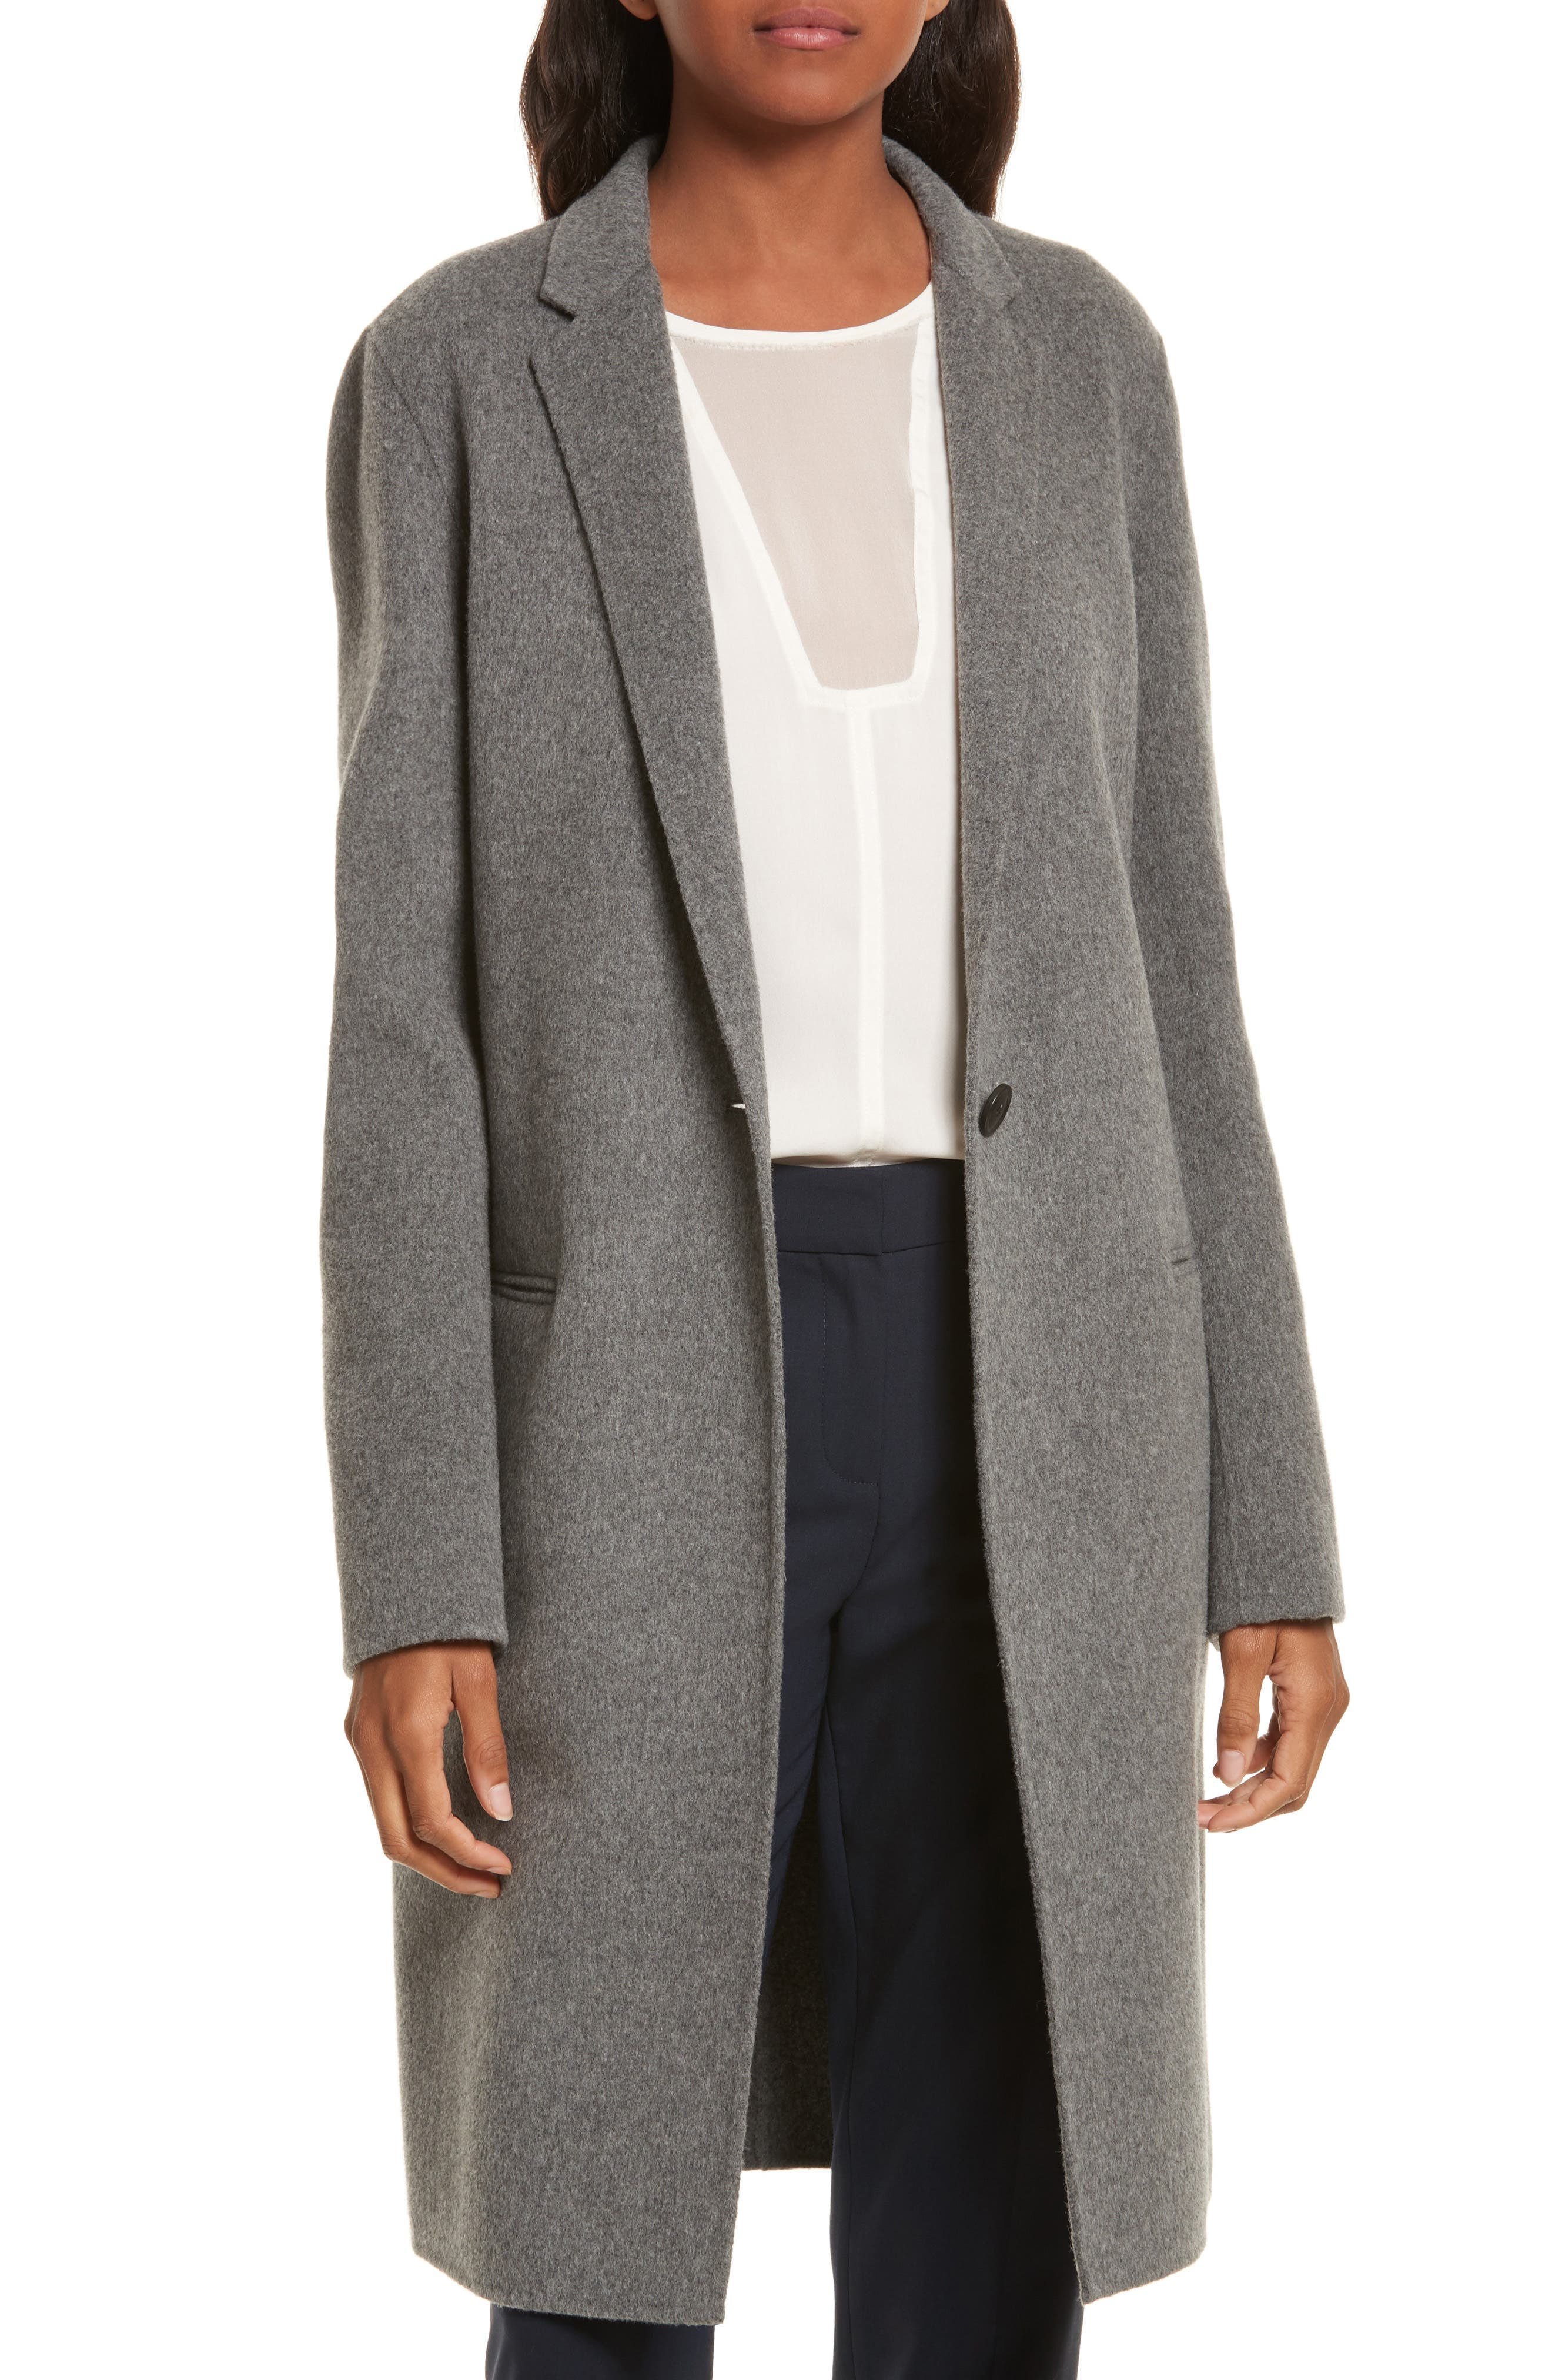 New Divide Wool & Cashmere Coat, Main, color, 021